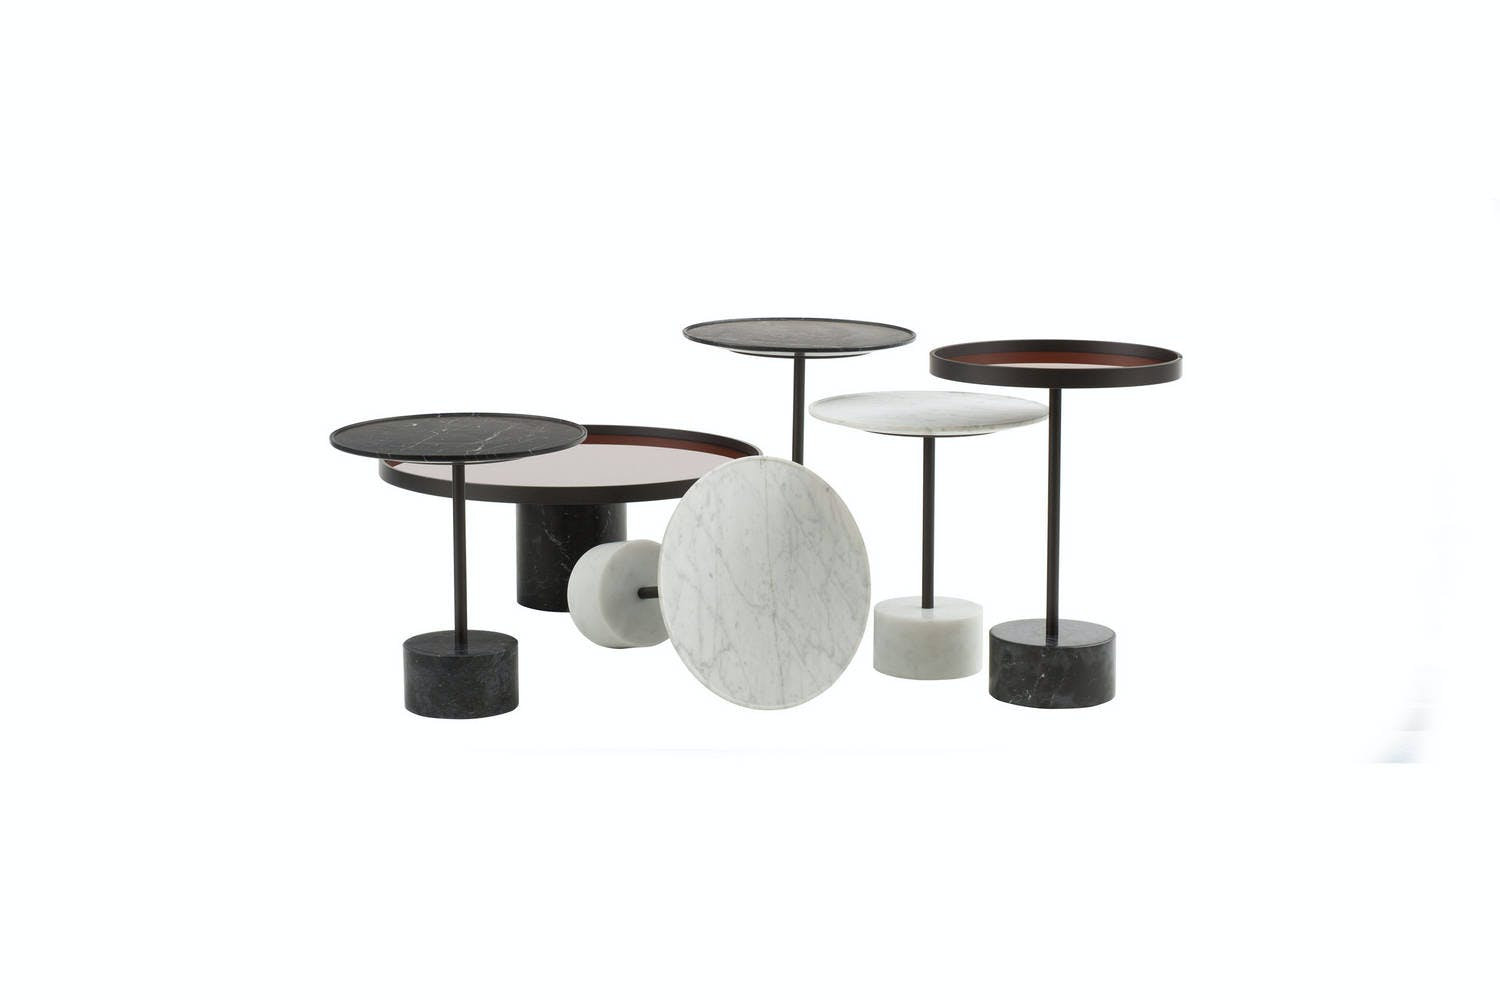 194 9 Coffee Table By Piero Lissoni For Cassina Space Furniture